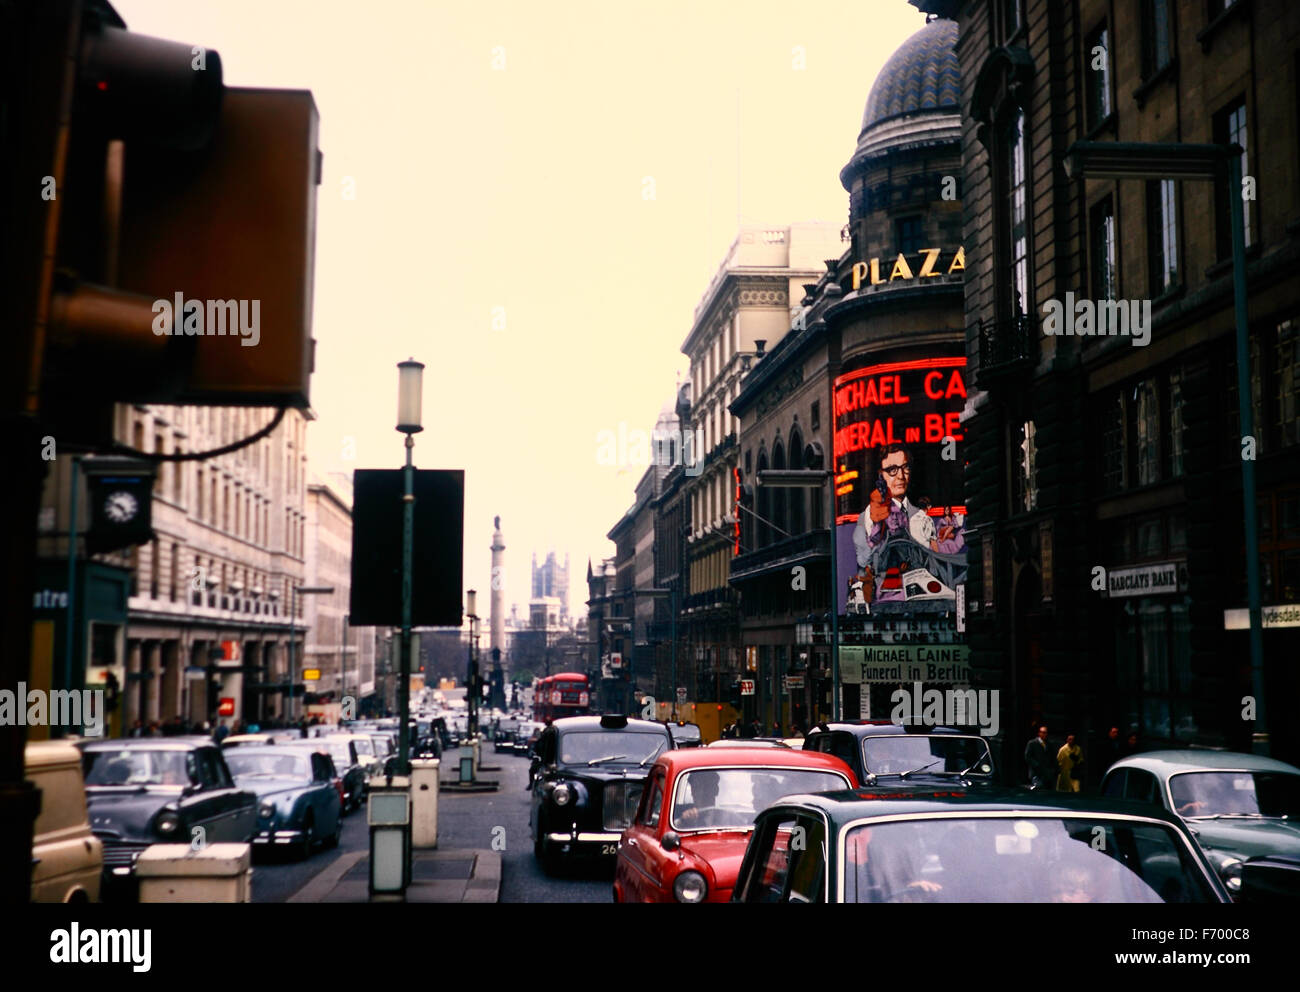 Vintage image of London, UK taken in April 1967 with a billboard showing a Michael Caine show - Stock Image